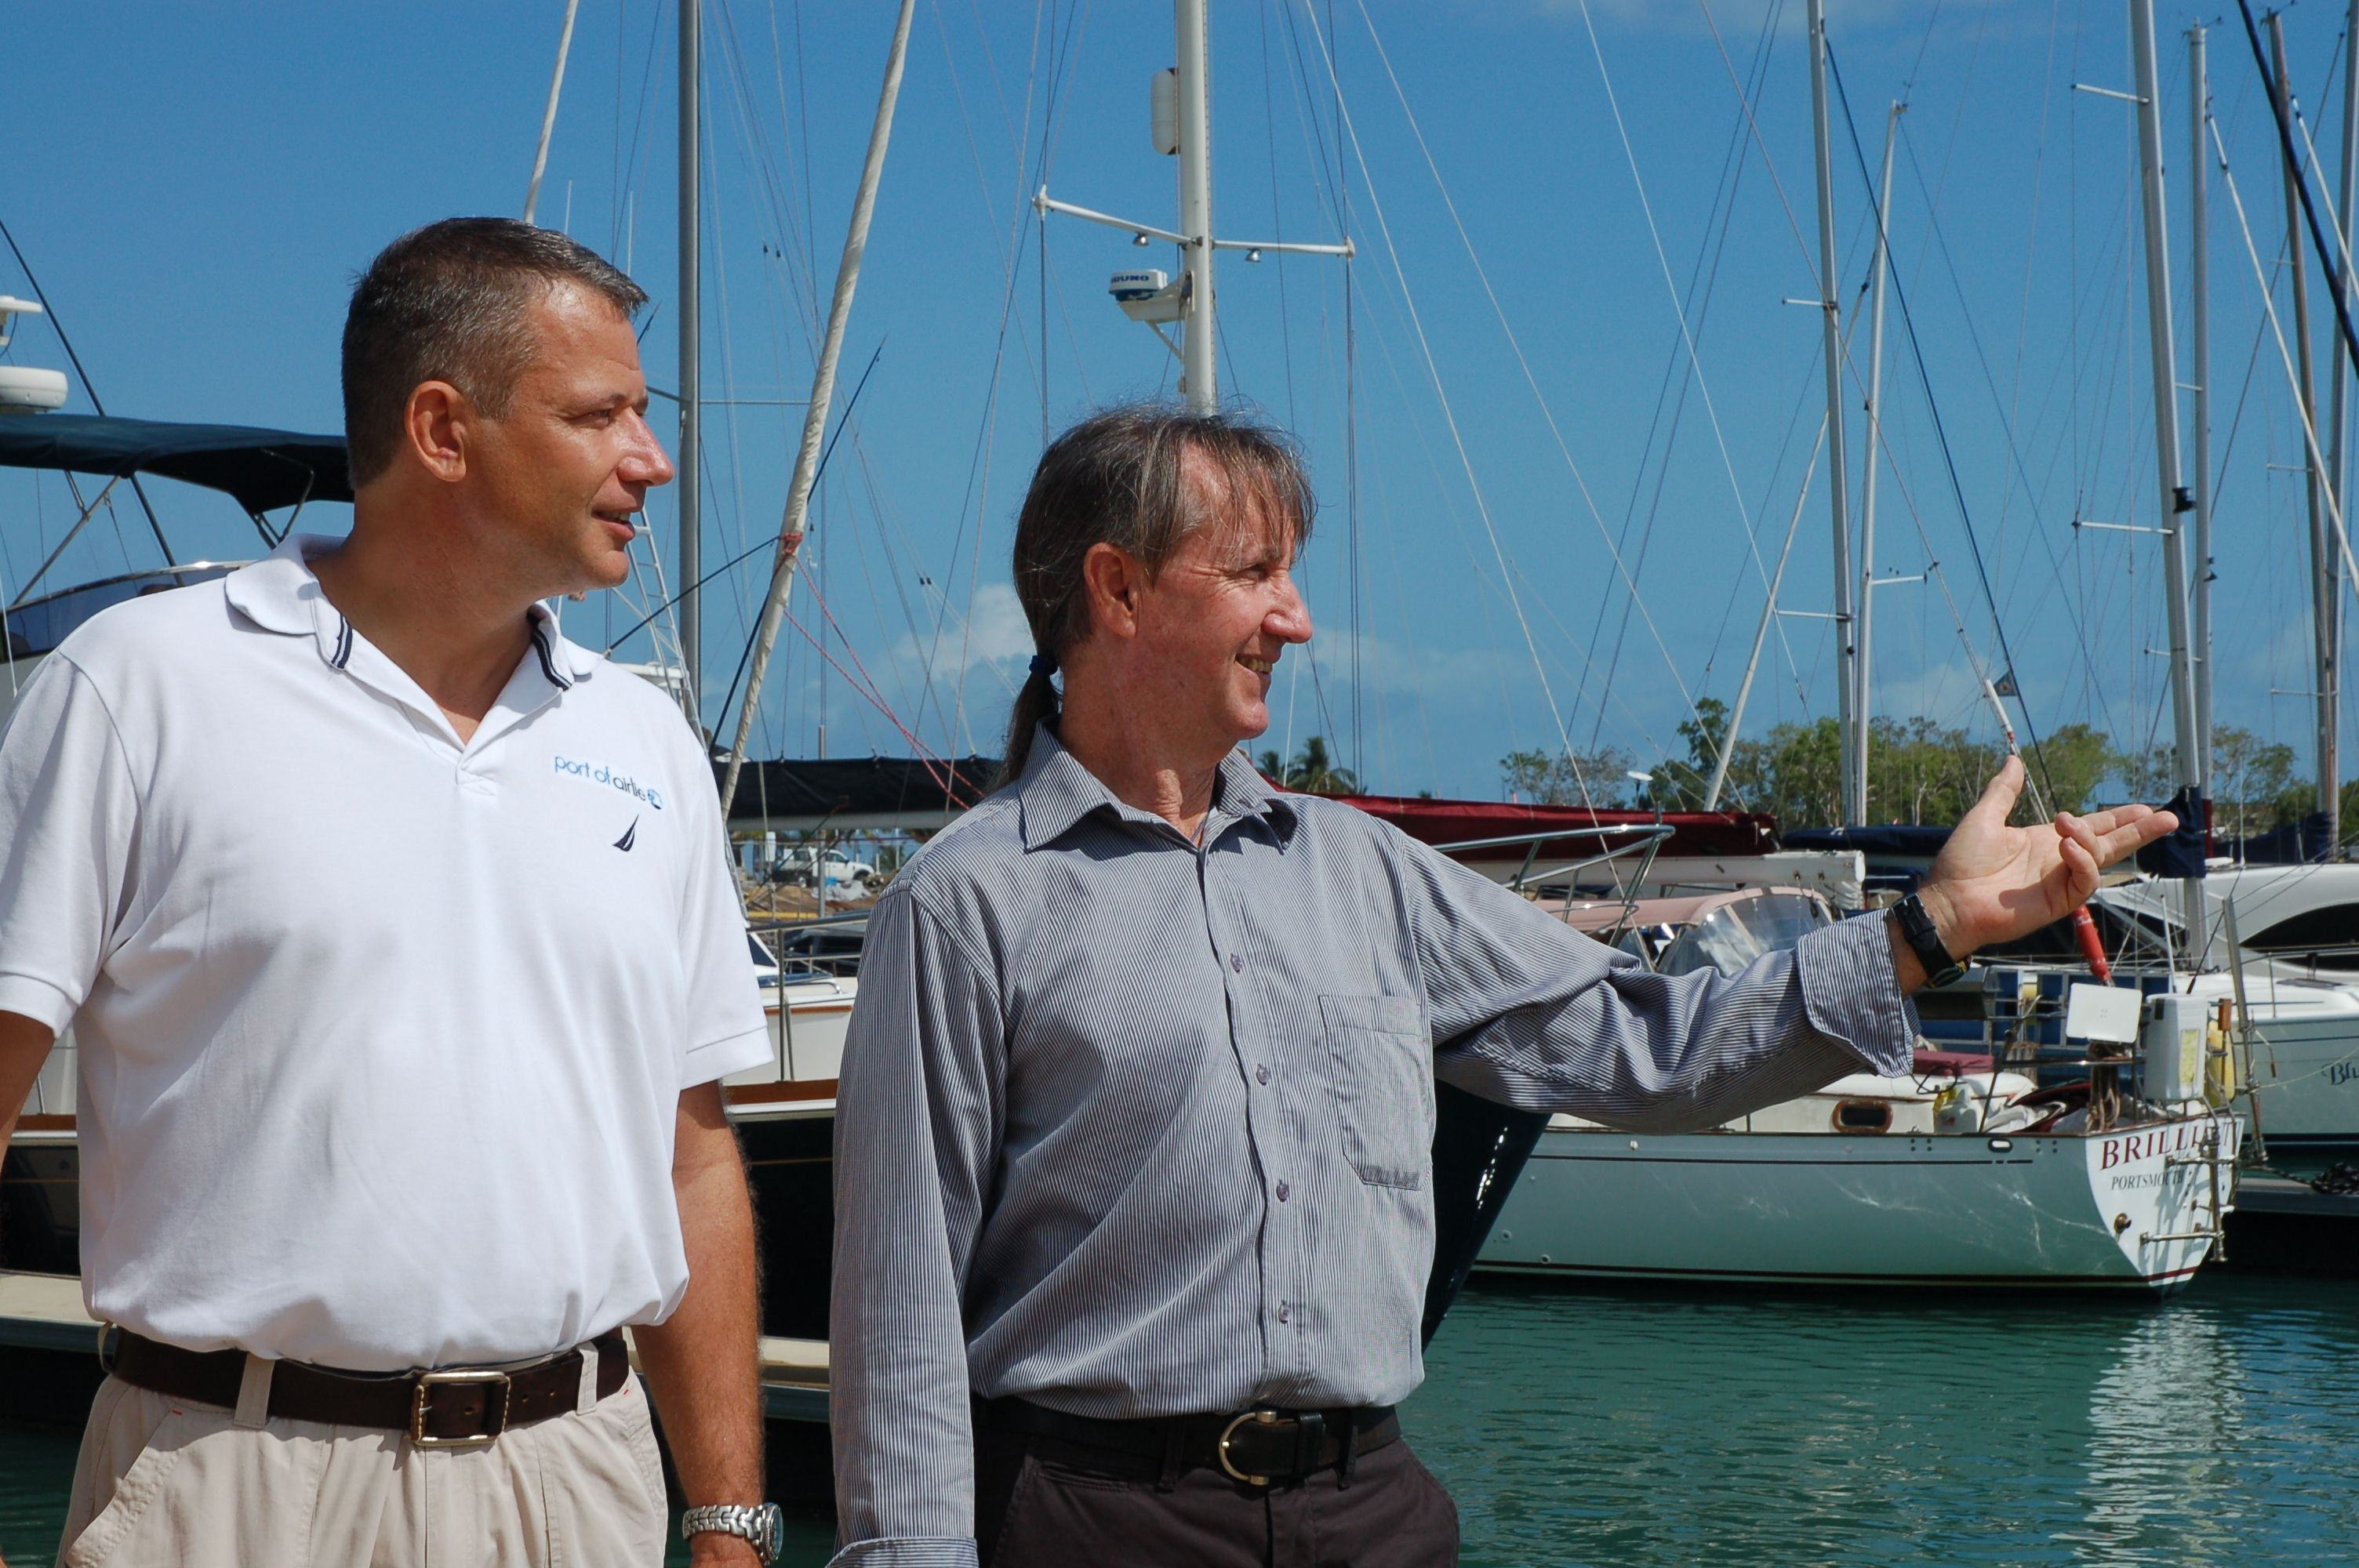 Port of Airlie officially opened